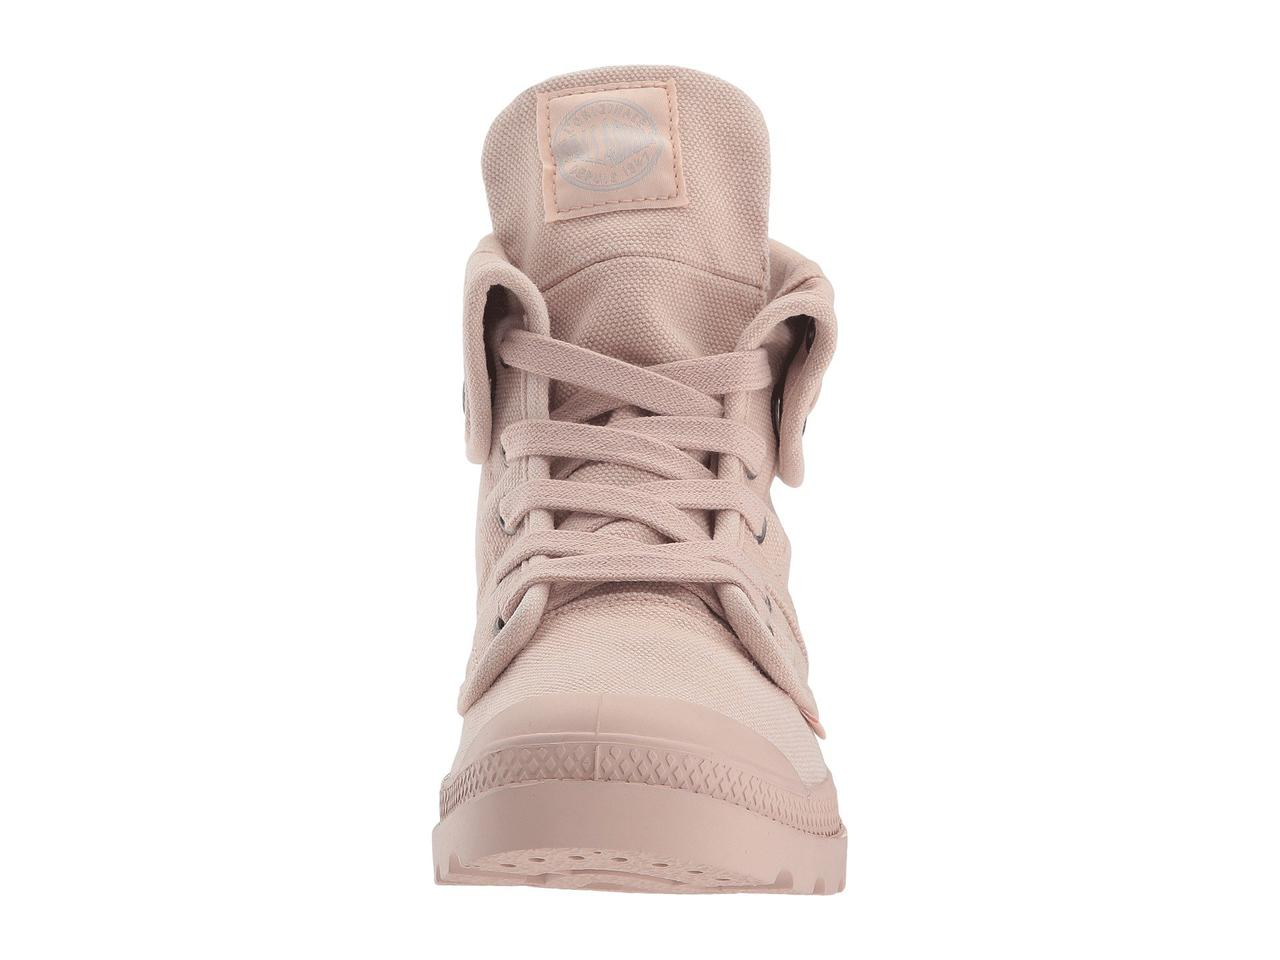 Кроссовки Кеды (Оригинал) Palladium Pallabrouse Baggy Rose Dust Silver  Birch b0ee874398dca